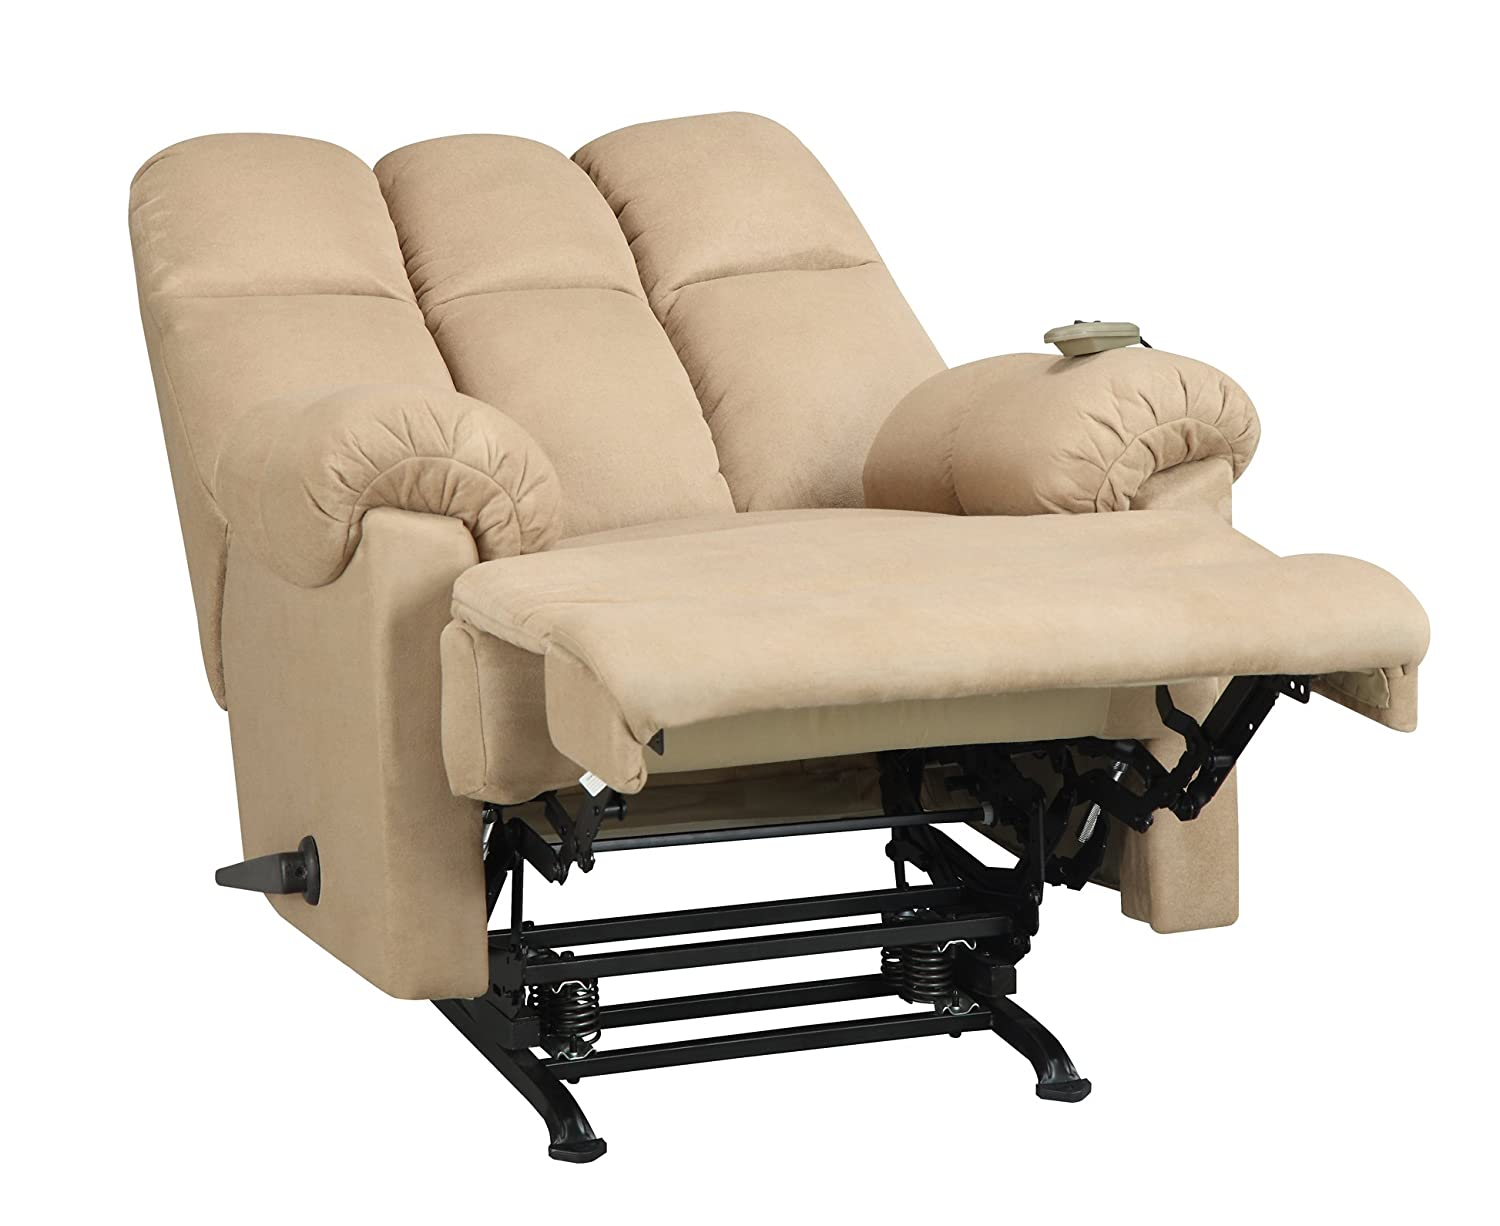 recliner heavy main image outfitters recliners fire duty station